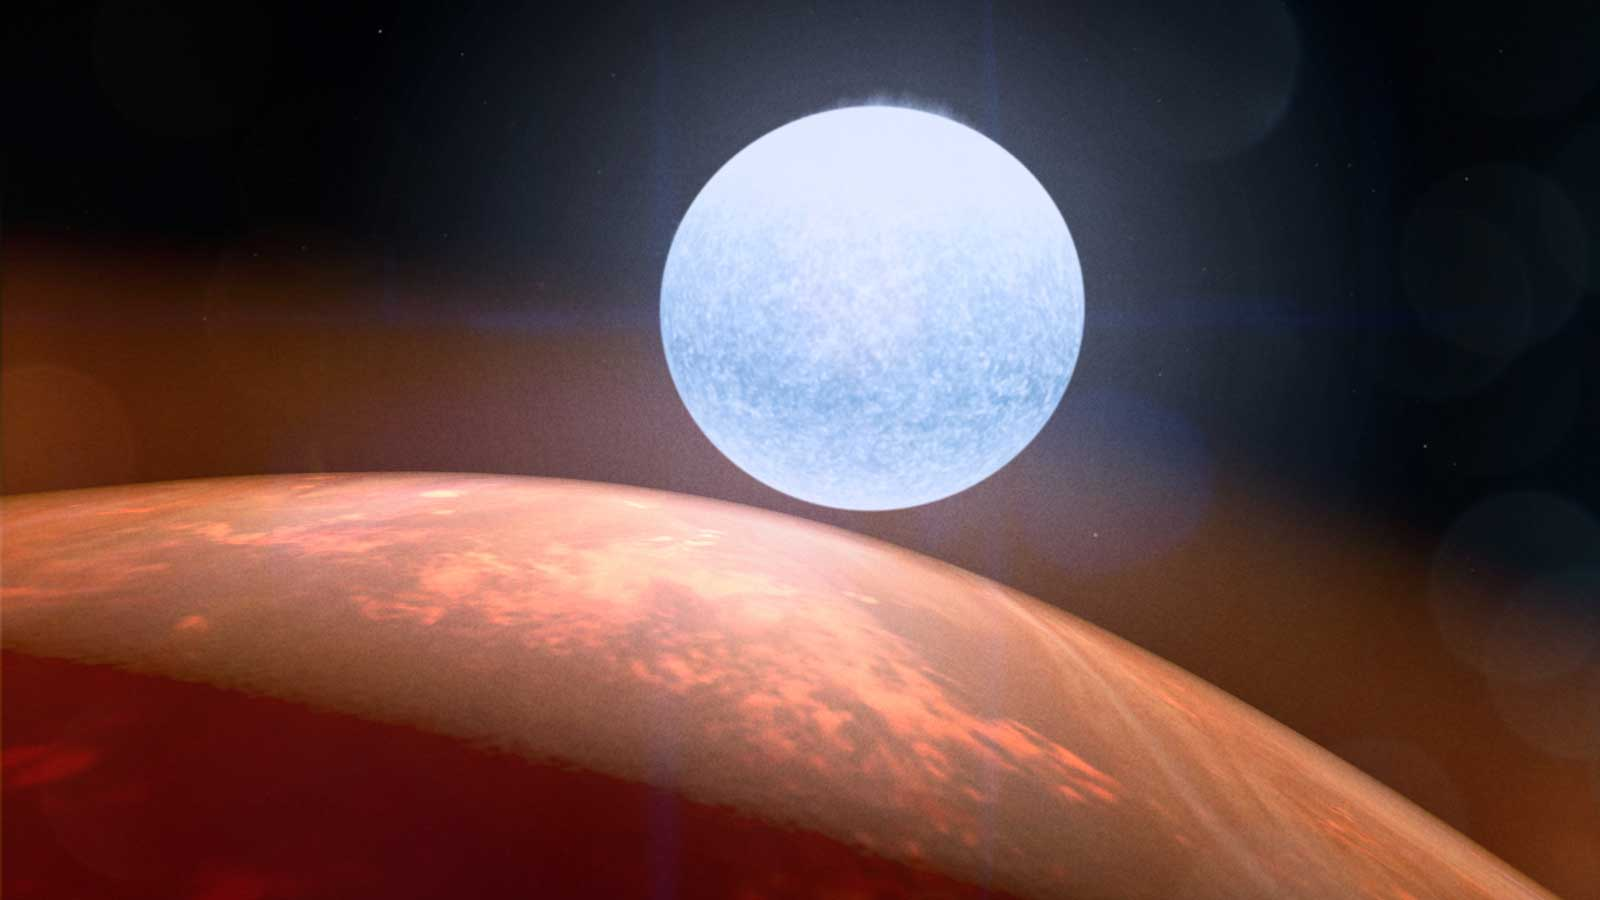 slide 4 - A large red exoplanet is seen with a white hot star